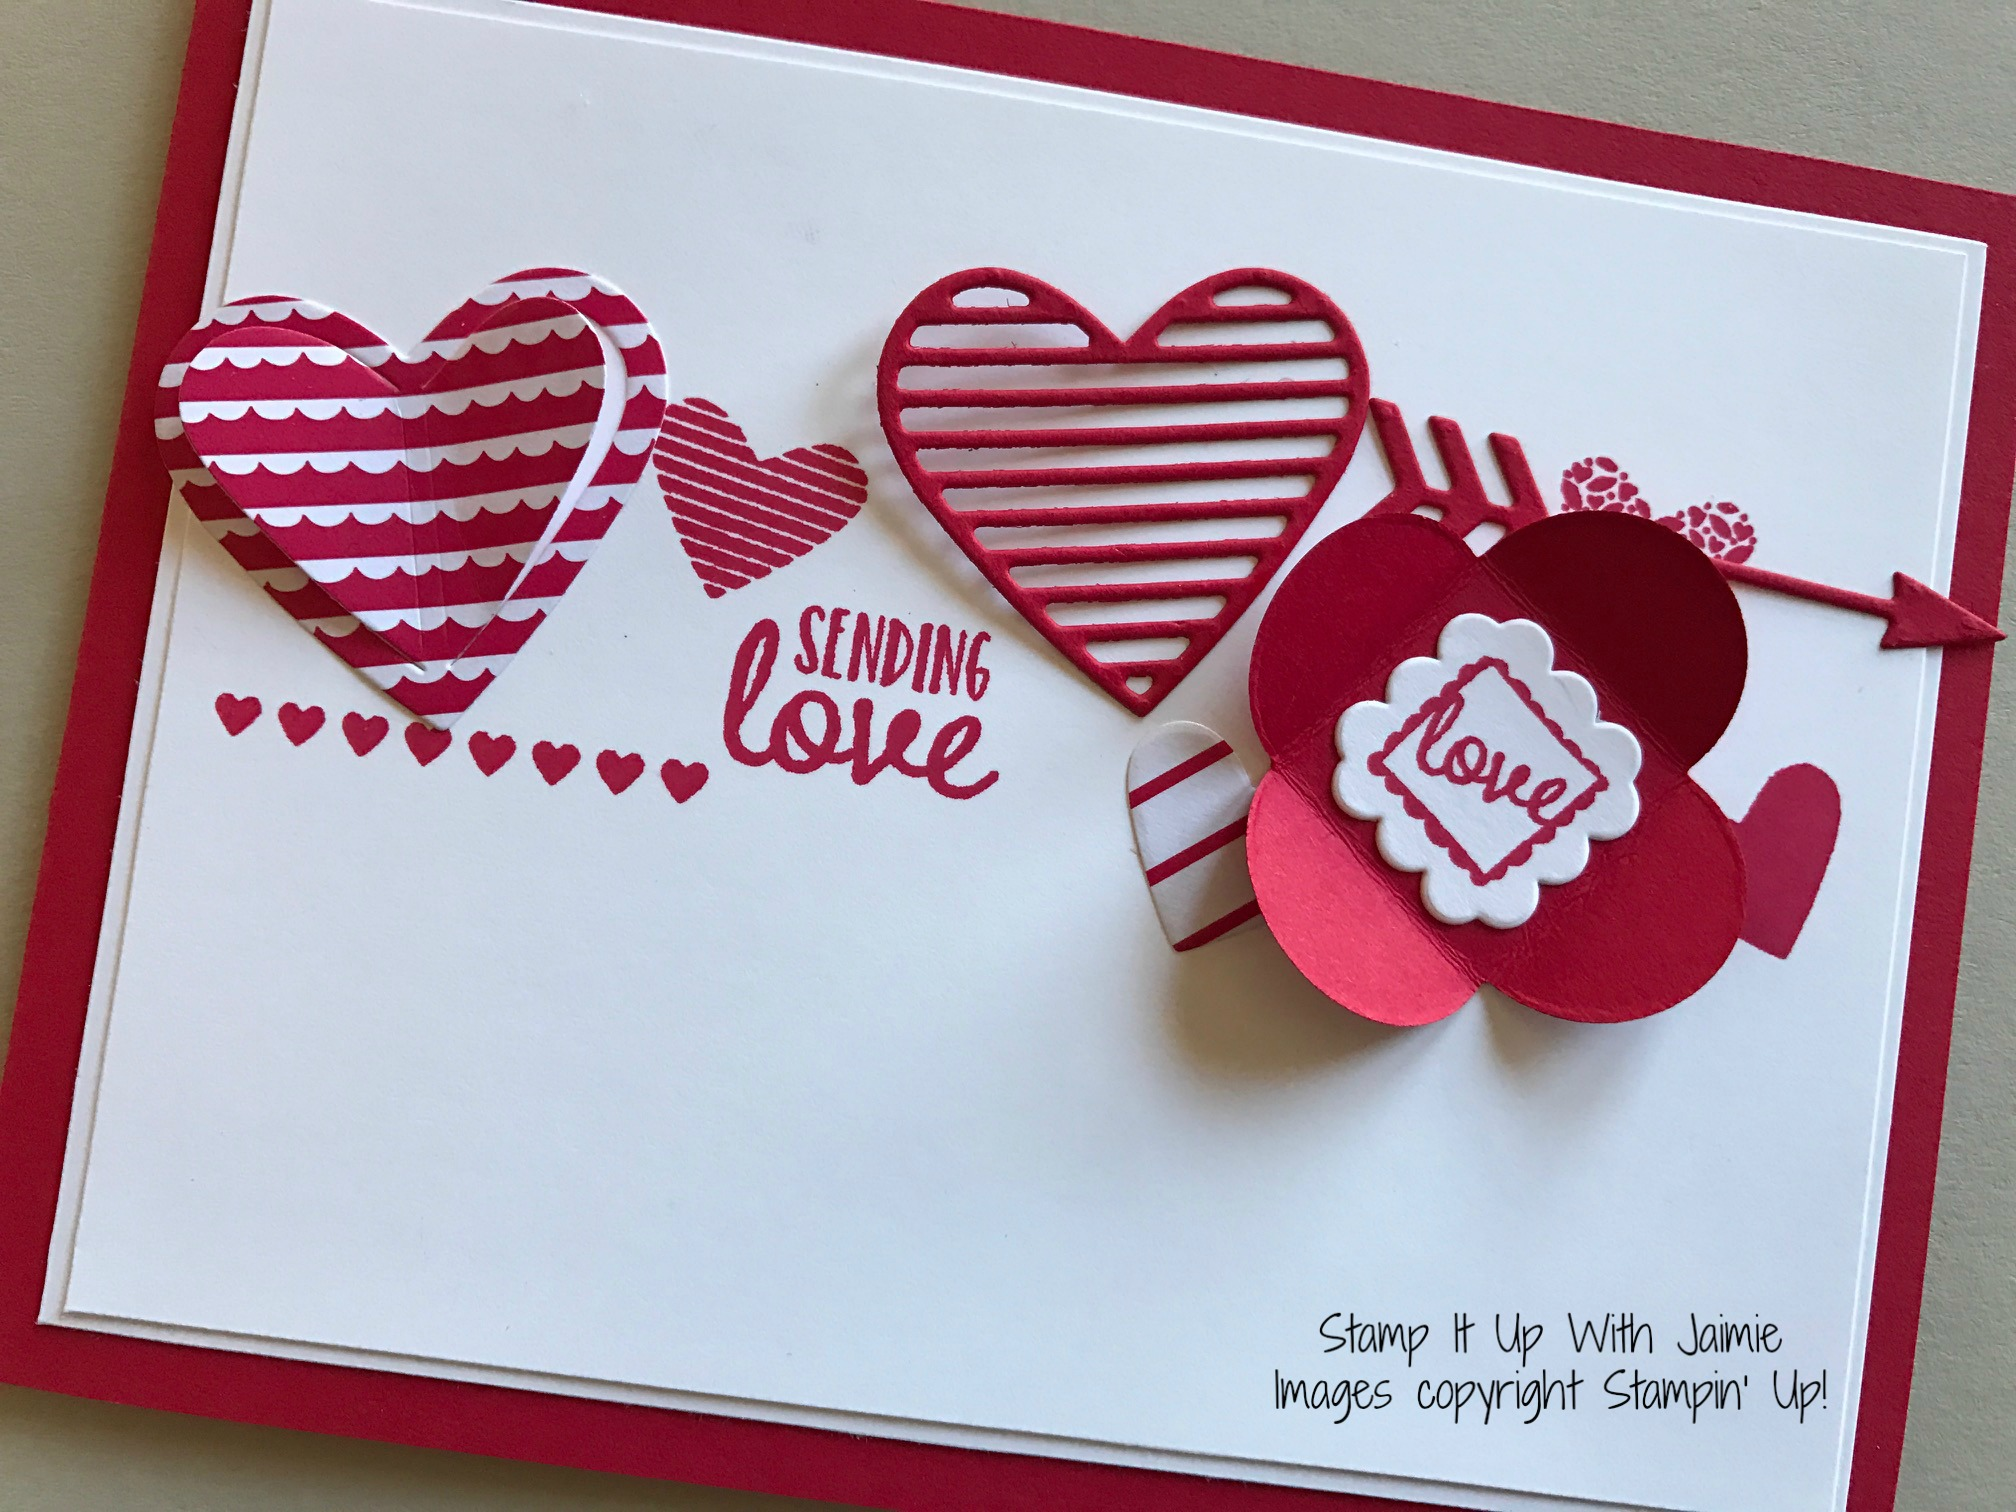 stampin up sending love stamp it up with jaimie - Stampin Up Valentine Card Ideas